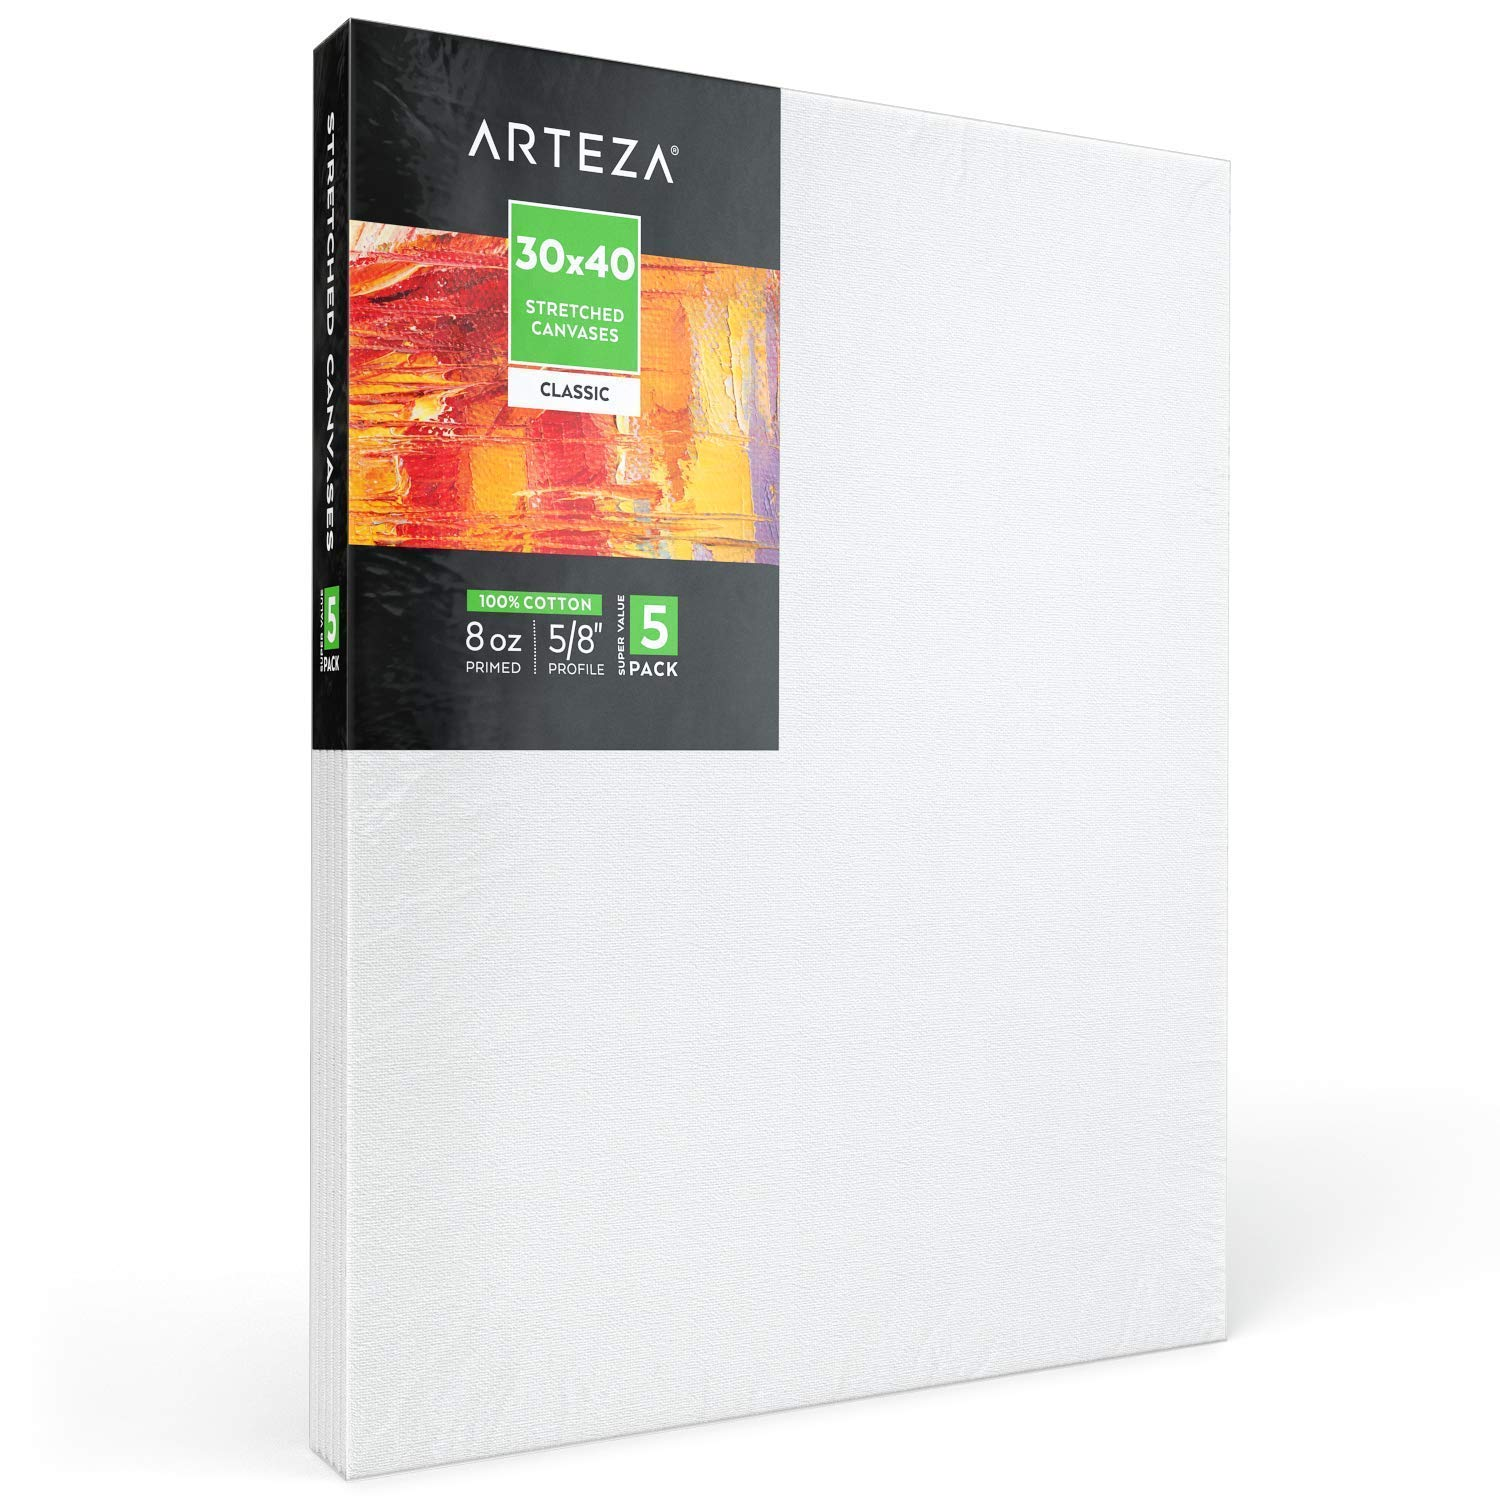 Arteza Blank Pre Stretched Canvas for Painting, 30X40, Pack of 2, Primed, 100% Cotton, for Acrylic Paint, Oil Paint, Other Wet or Dry Art Media, for The Professional Artist, Hobby Painters, Kids ARTZ-8058